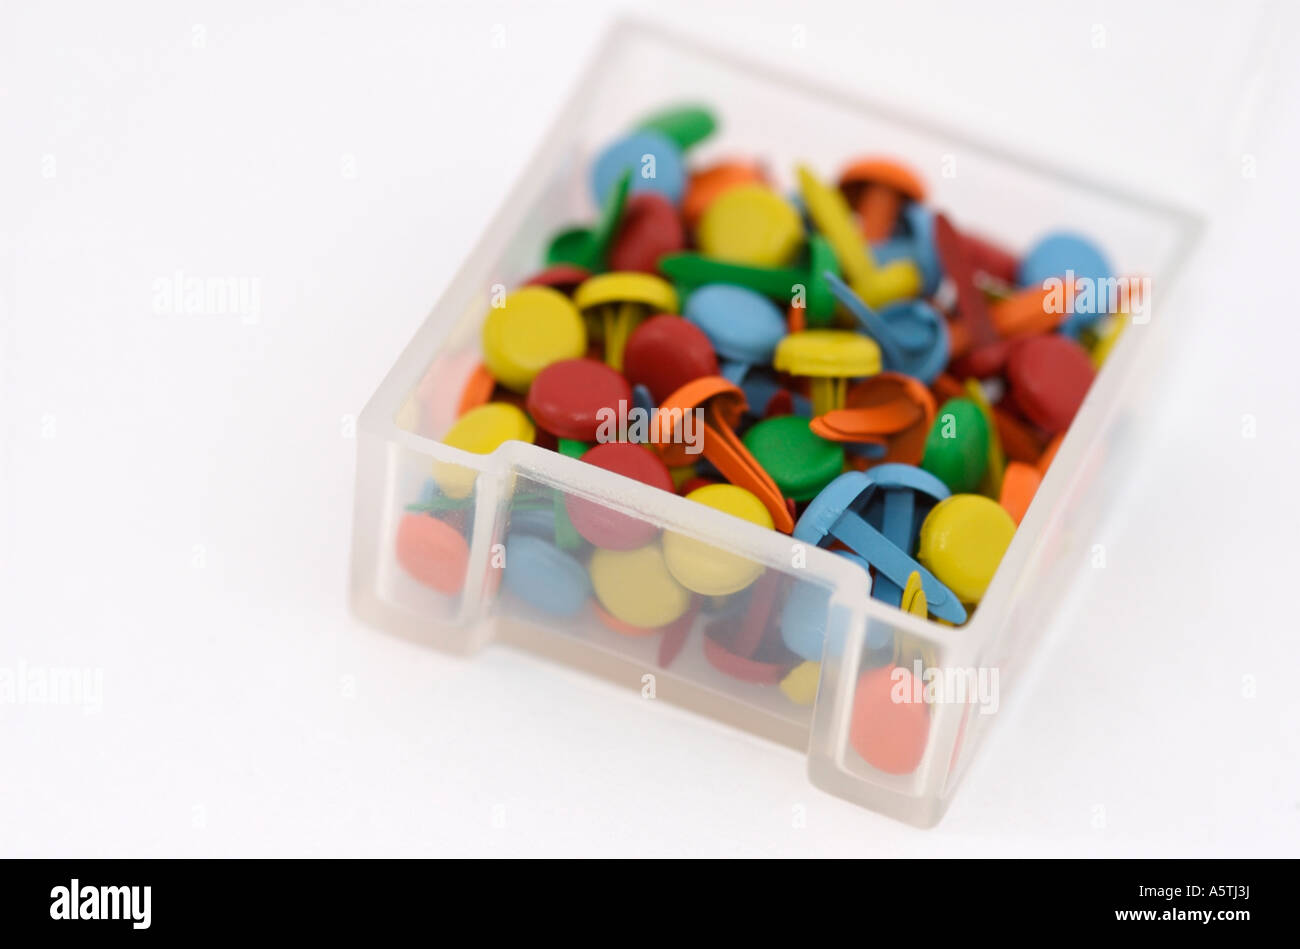 Container full of coloured brads (paper fasteners) used in papercrafts. - Stock Image